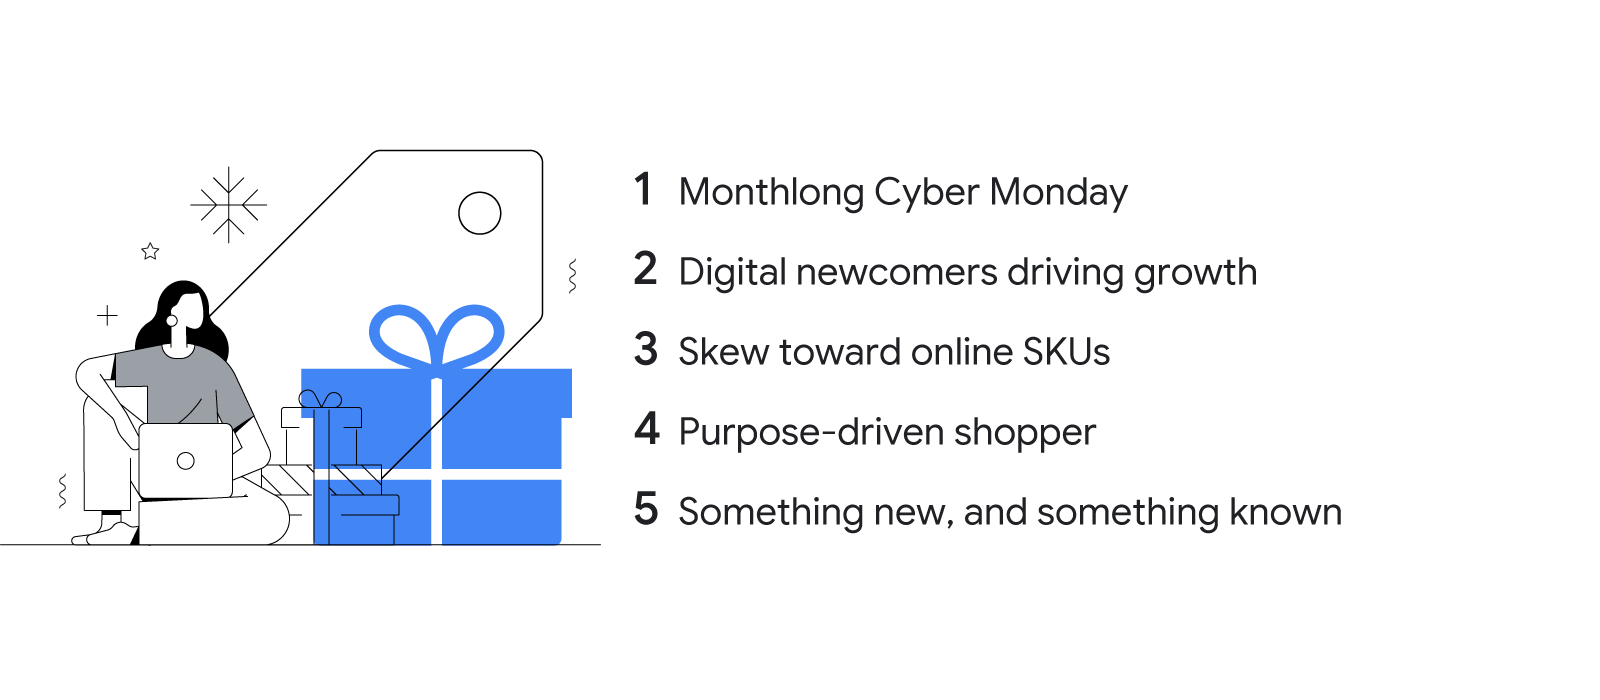 In a stylized illustration, a woman with her laptop sits next to a pile of gift boxes. The image is accompanied by text that lists five holiday trends to expect this season: Monthlong Cyber Monday; digital newcomers driving growth; a skew toward online SK